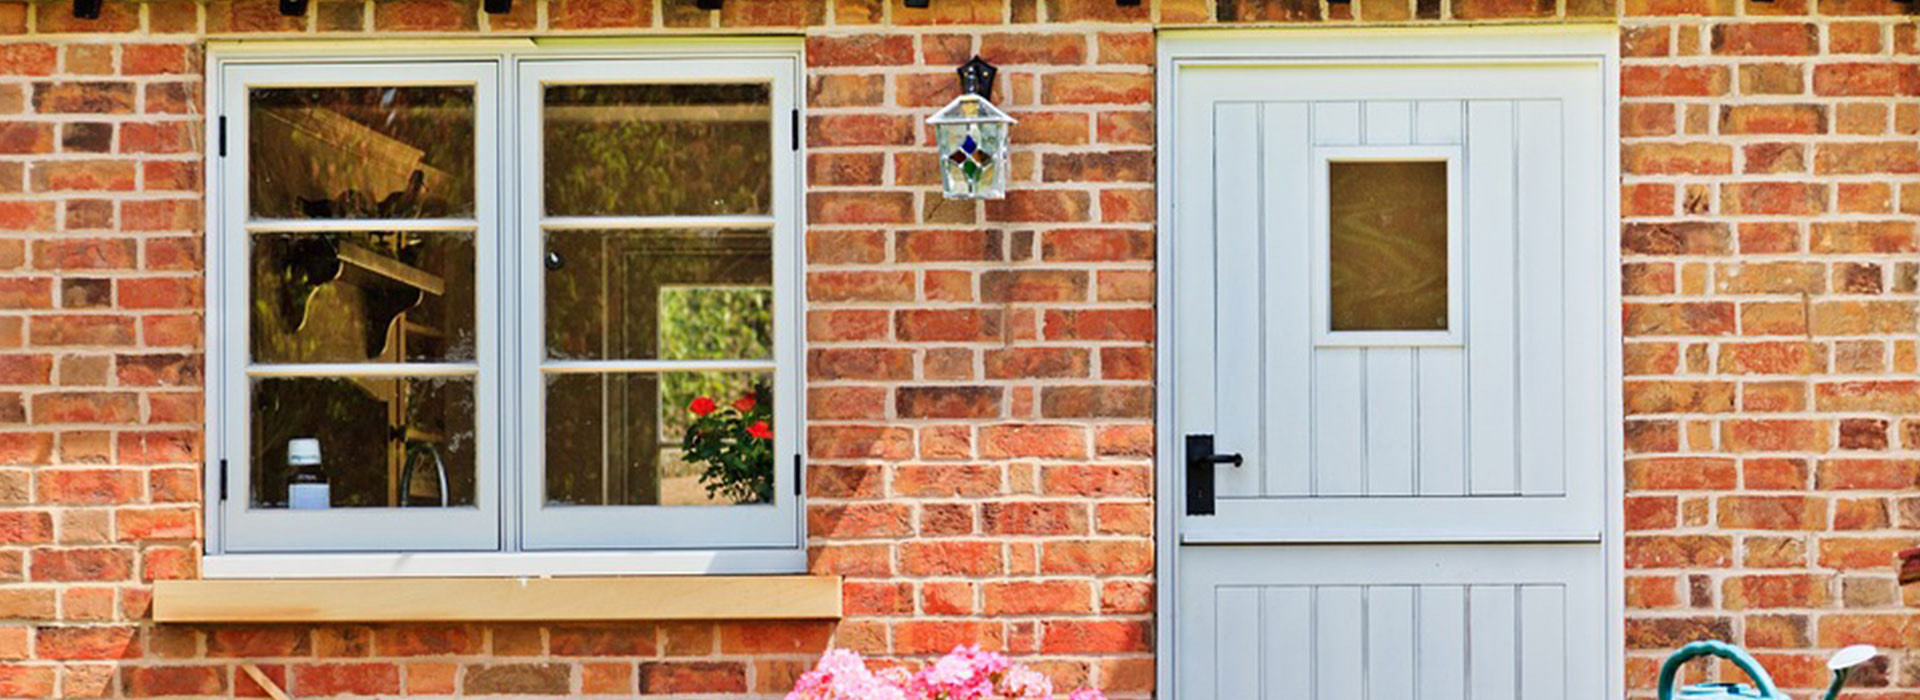 uPVC Stable Doors Sidcup Kent